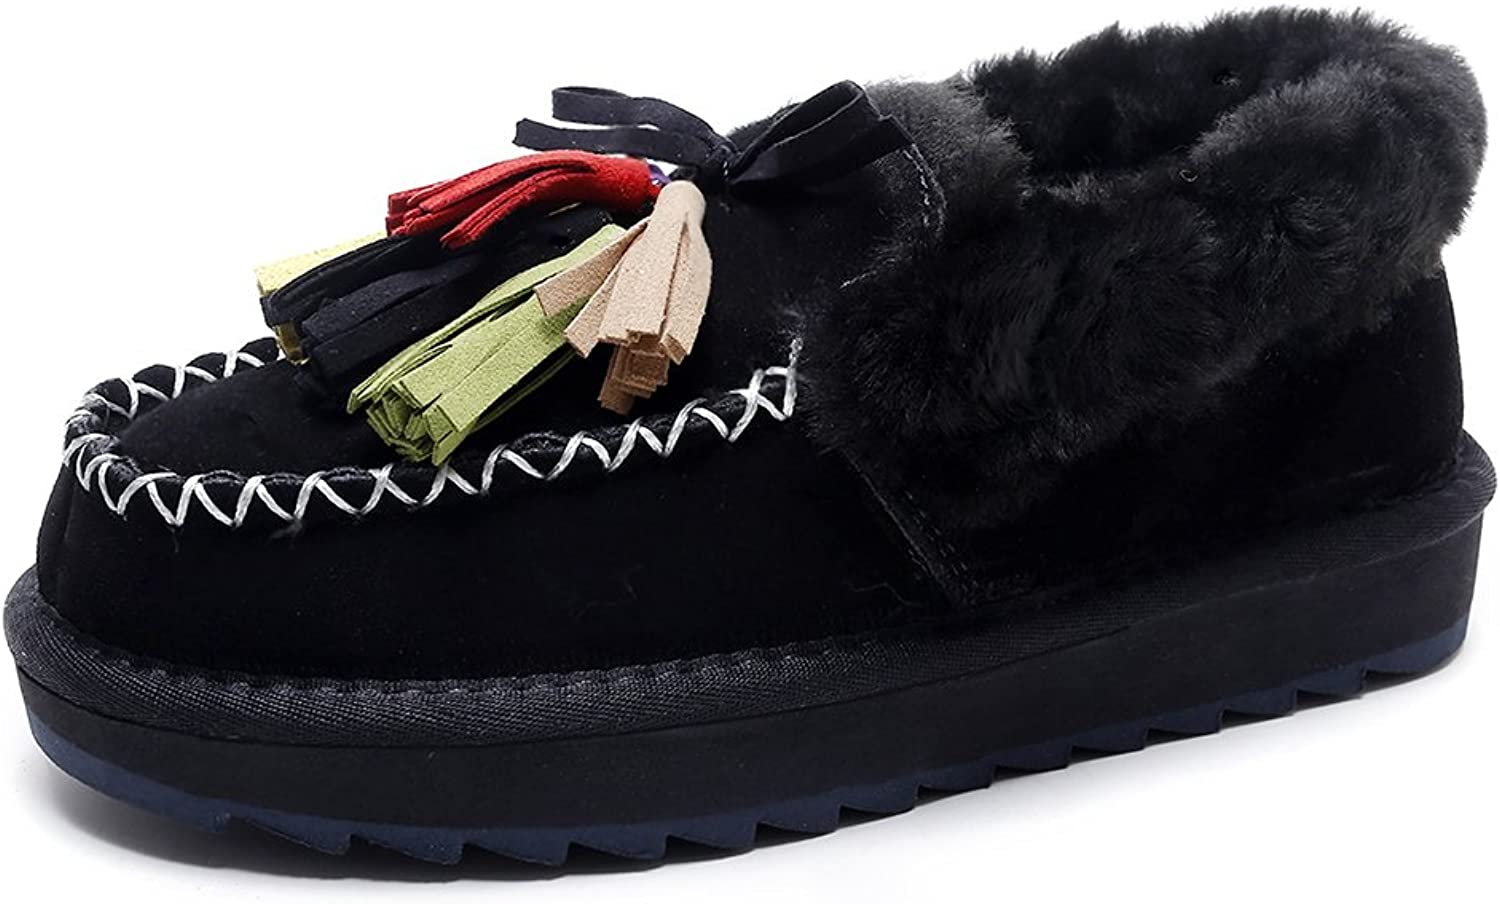 A-BUYBEA Women's Treaded Sole Tassels Pom-poms Flats Warm Fur Loafer shoes